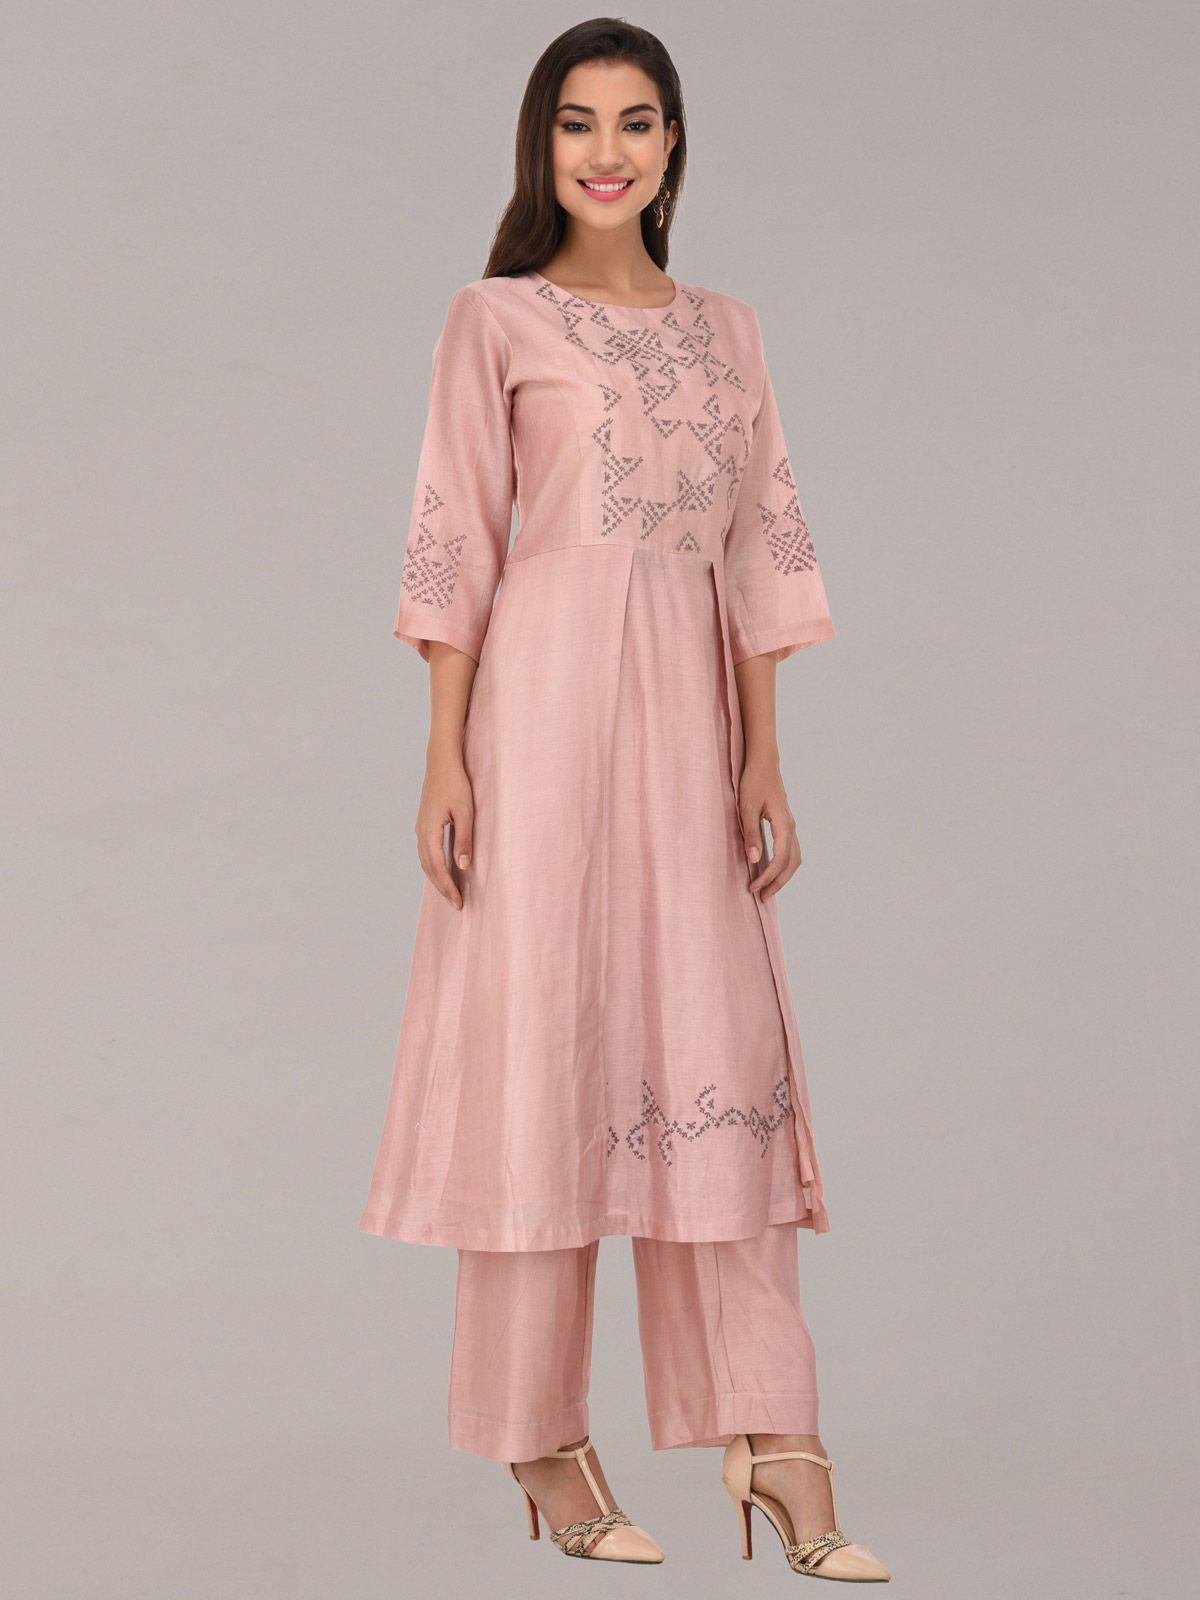 Embroided peach chanderi silk flap tunic with bottom